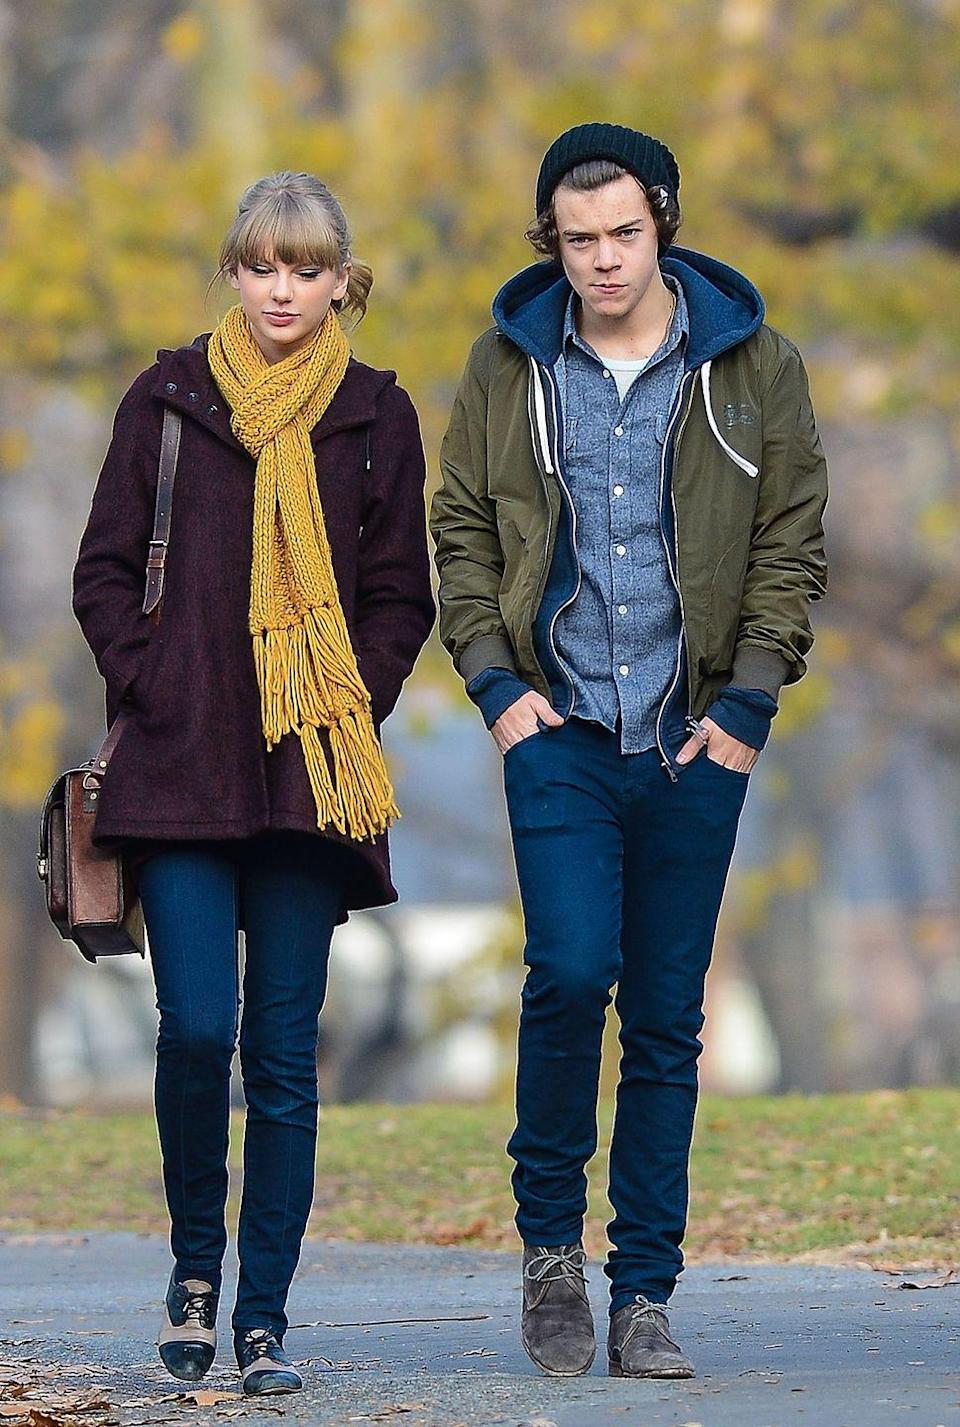 """<p>Besides writing songs about Harry ('I Knew You Were Trouble,' 'Style,' to name a couple) Taylor also delivered performances about her ex-boyfriend. In 2013, Taylor opened the Grammys with 'We Are Never Ever Getting Back Together' (that one's about Jake Gyllenhaal) with Harry watching in the audience. </p><p>When it came to the speaking part about him calling her, <a href=""""https://www.youtube.com/watch?v=wVFTpNcI2hI"""" rel=""""nofollow noopener"""" target=""""_blank"""" data-ylk=""""slk:Taylor used a British accent"""" class=""""link rapid-noclick-resp"""">Taylor used a British accent</a> and tweaked the lyrics to 'I'm busy opening the Grammys.' </p><p>Later that year, in her acceptance speech for Best Female Video for 'I Knew You Were Trouble' at the VMAs, Taylor thanked 'the person who inspired this song, who knows exactly who he is, because now I got one of these. Thank you so much!' (This is also the <a href=""""https://www.huffingtonpost.com/2013/08/25/taylor-swift-harry-styles-vmas-shut-the-fuck-up_n_3814782.html"""" rel=""""nofollow noopener"""" target=""""_blank"""" data-ylk=""""slk:same ceremony"""" class=""""link rapid-noclick-resp"""">same ceremony</a> where she was caught mumbling 'Shut the fuck up' during 1D's acceptance speech.)</p>"""